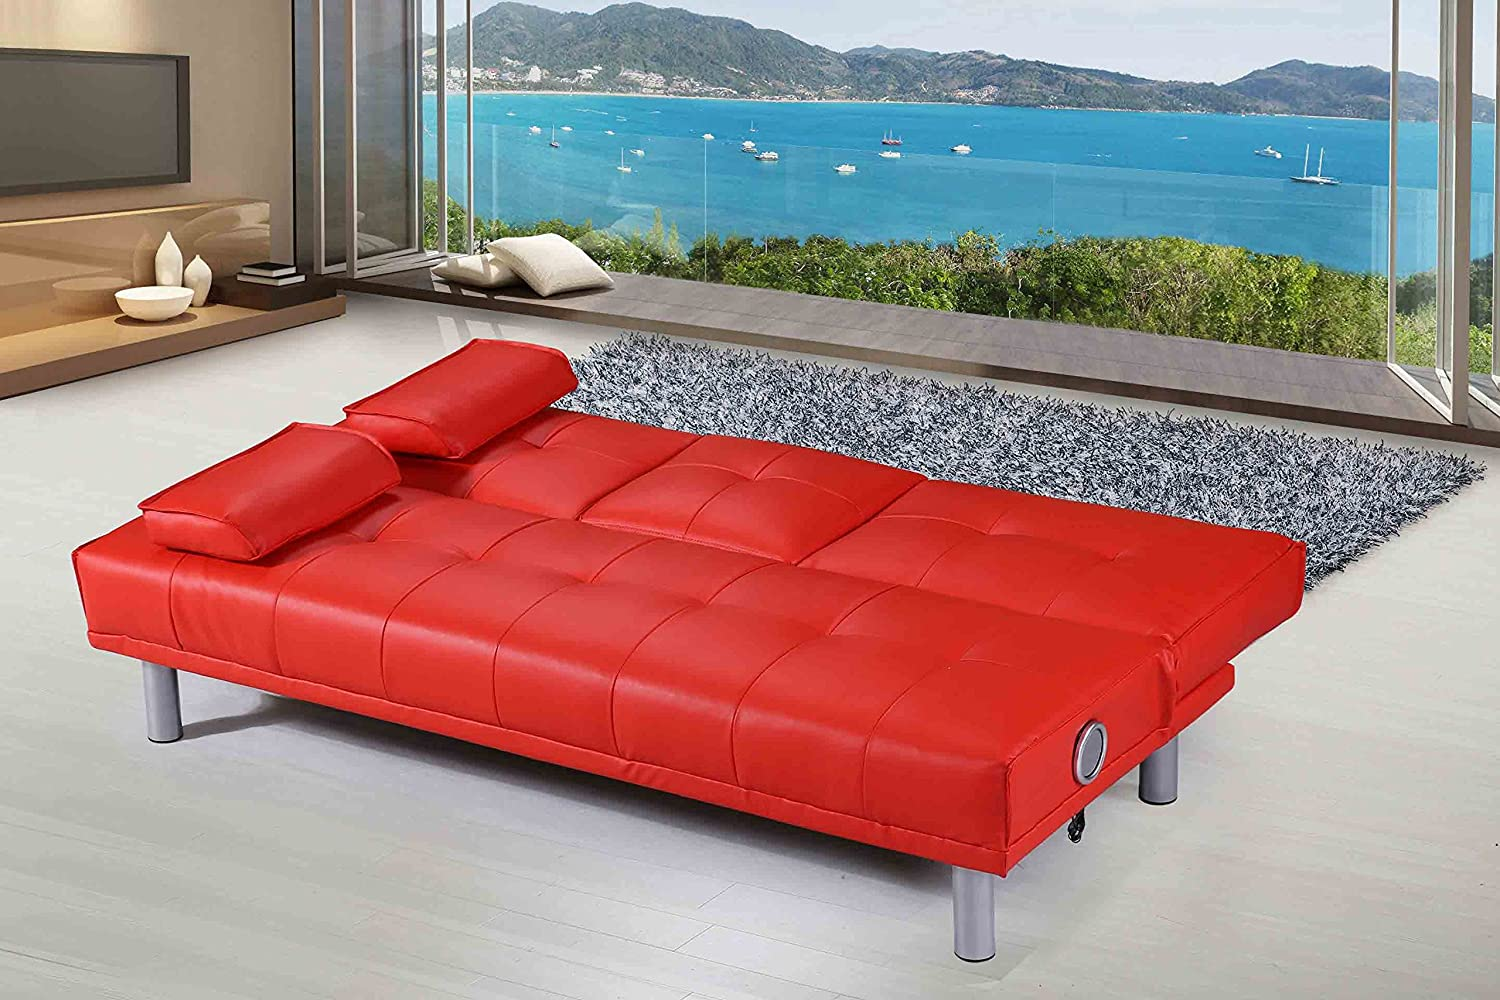 Modern leather sofa bed - New Manhattan Modern Sleep Design Faux Leather Sofa Bed With Bluetooth Stereo Speakers Available In Red Amazon Co Uk Kitchen Home